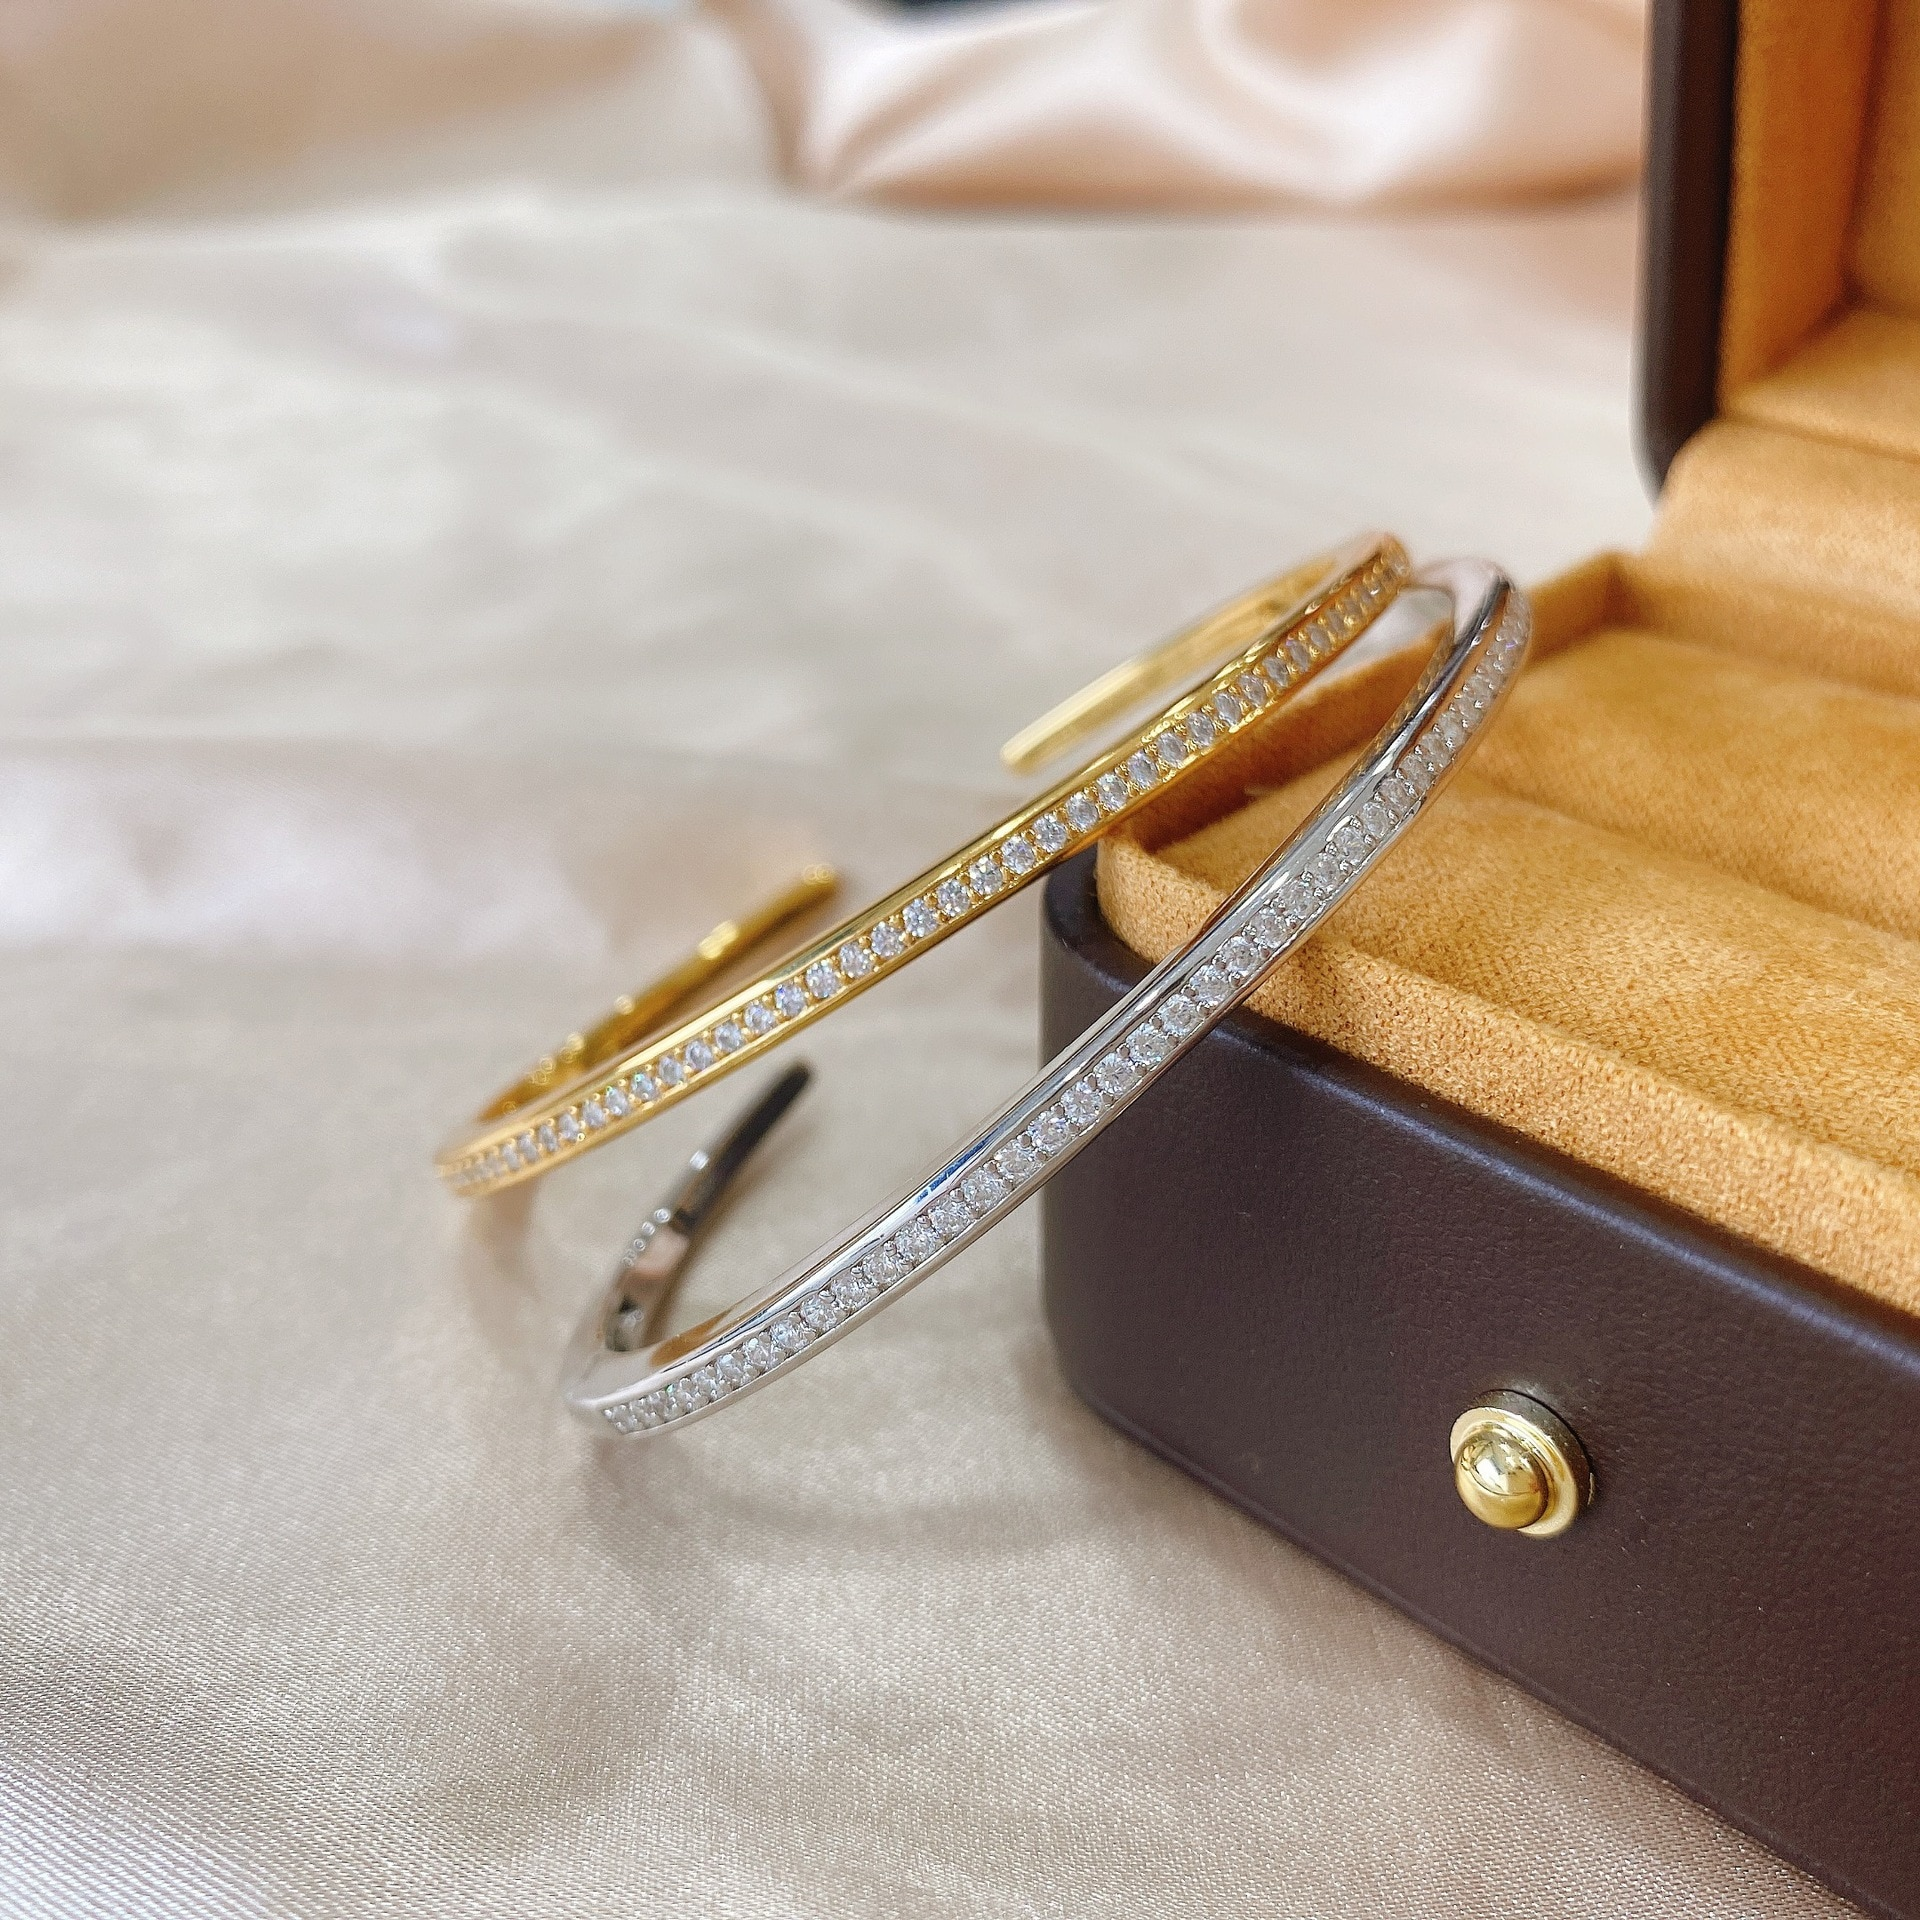 Promo 2021 Moissanite  Diamond Bangle Cuff For Women Bridal 100% Real 925 Sterling silver Wedding Bracelet Bangle Trendy Party Jewelry